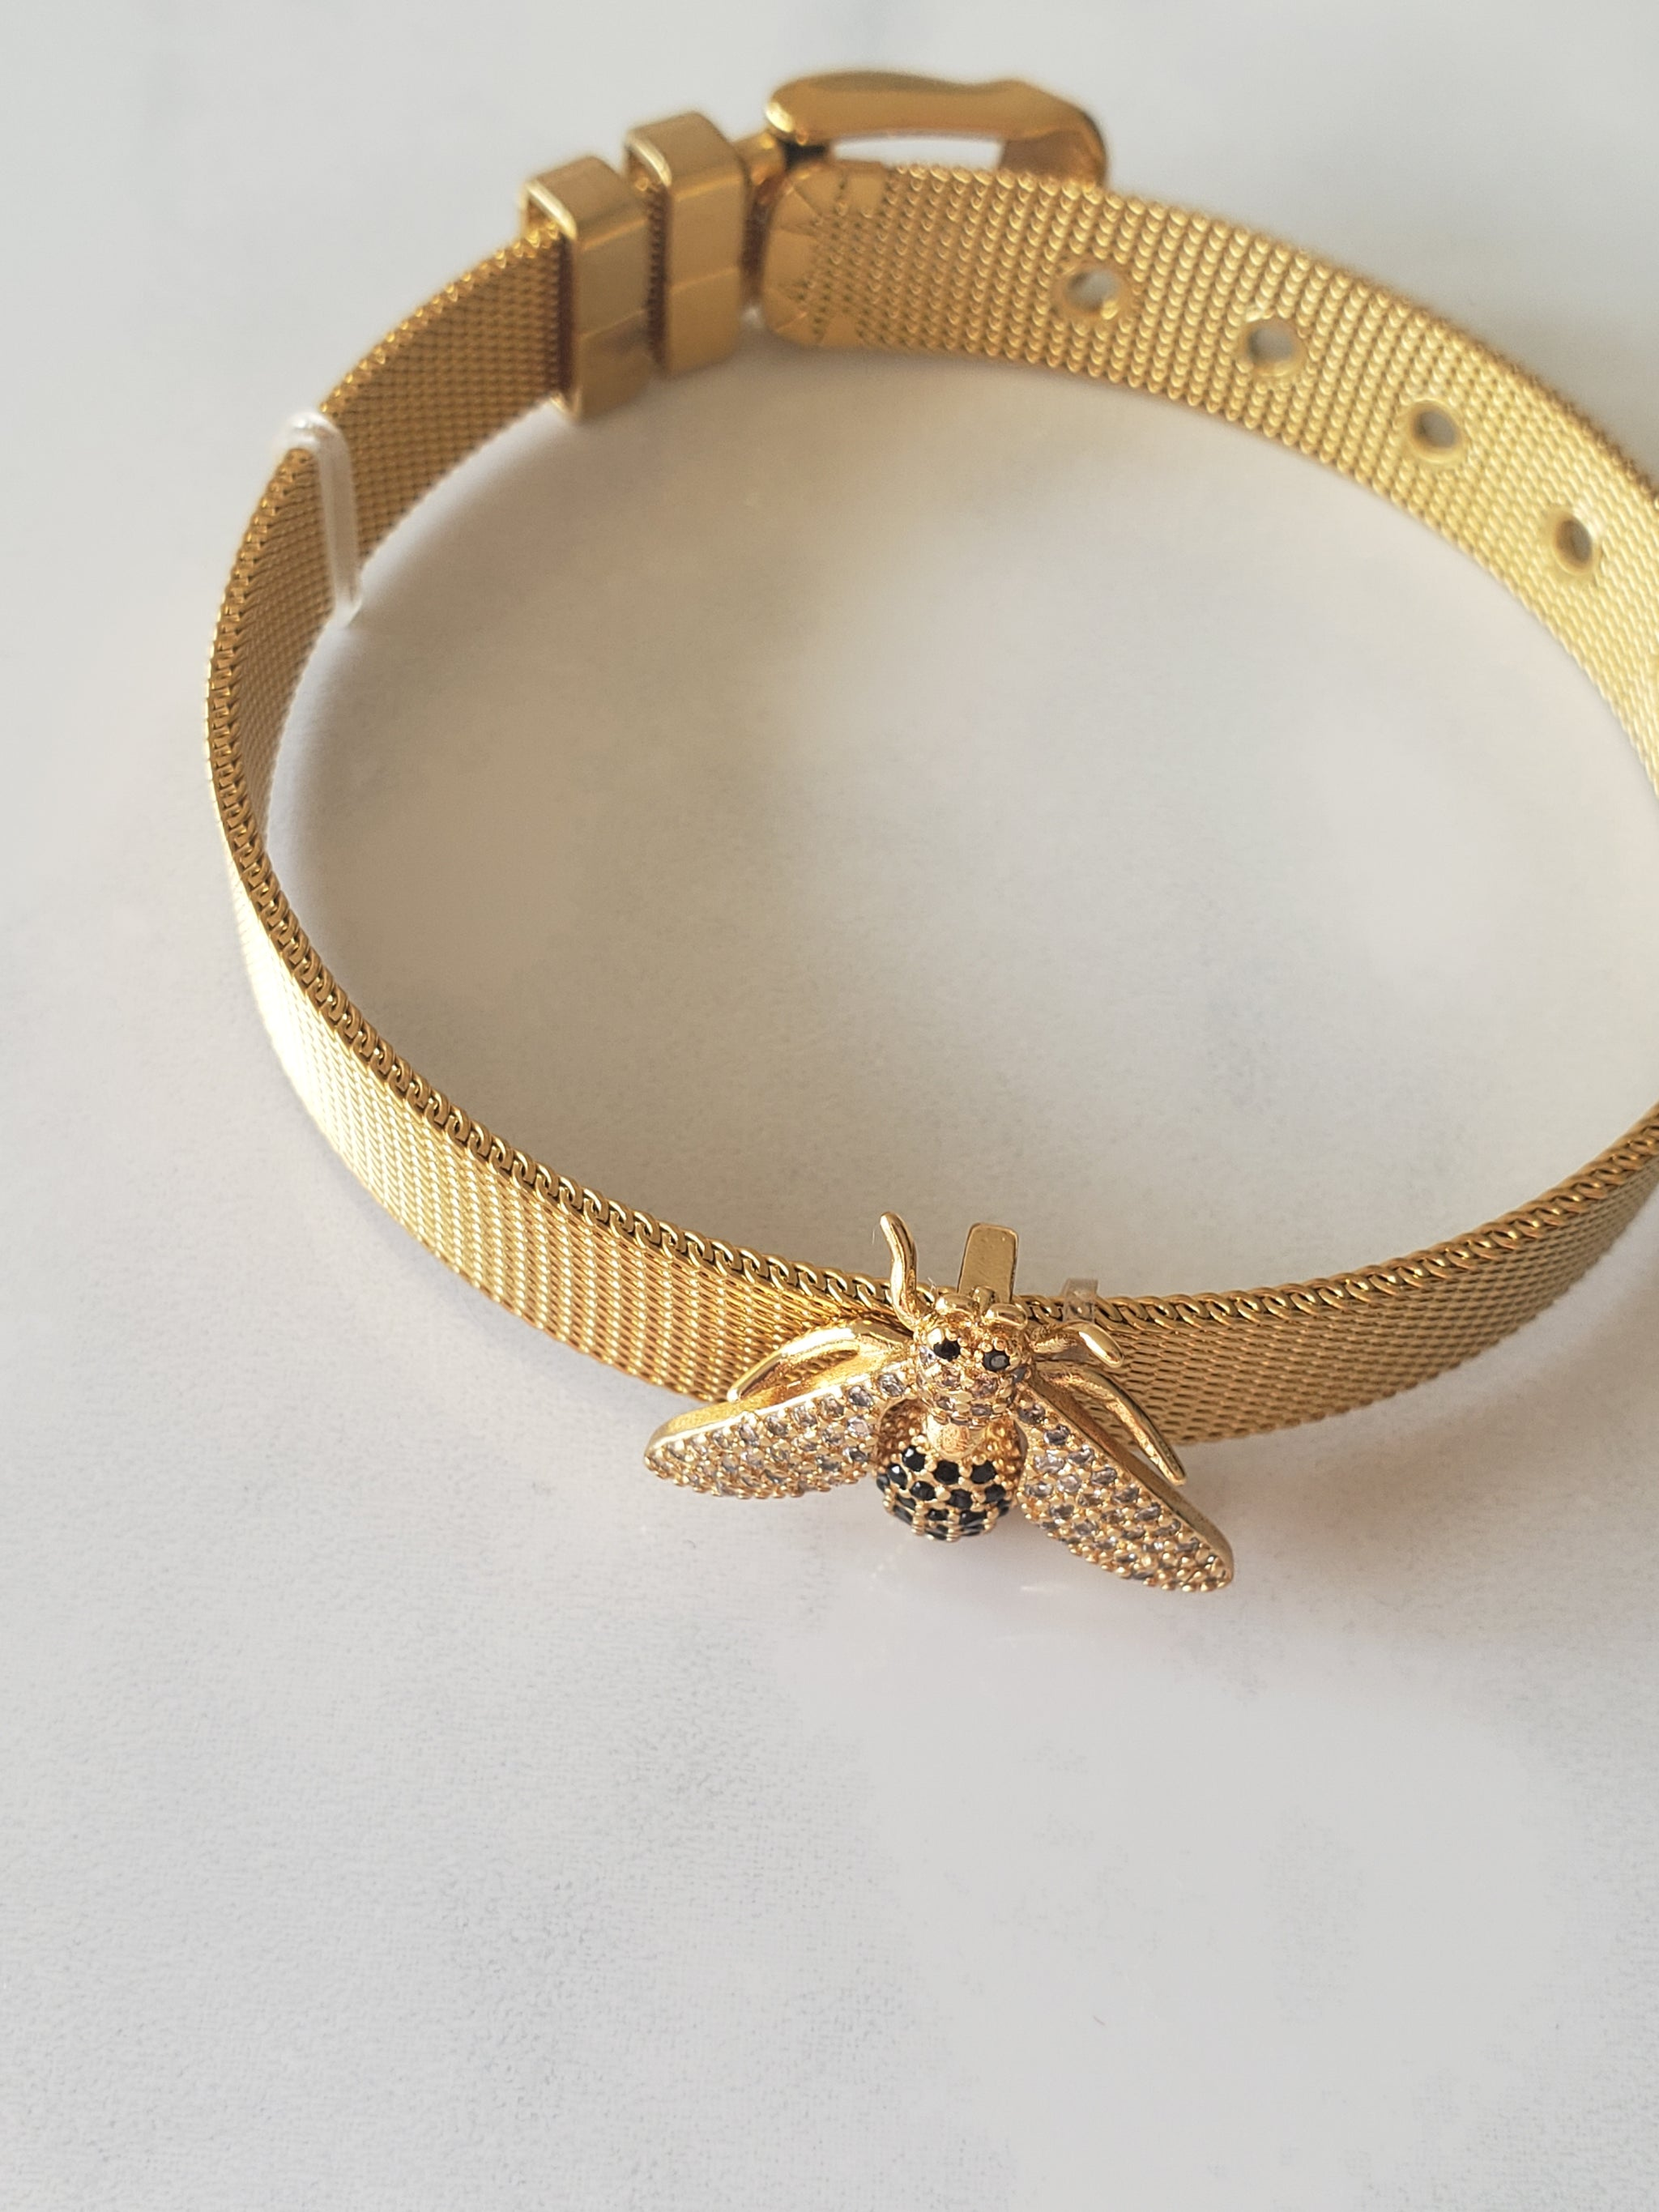 BUMBLE Bee Sleek BRACELET  (TF) - ebrook lael